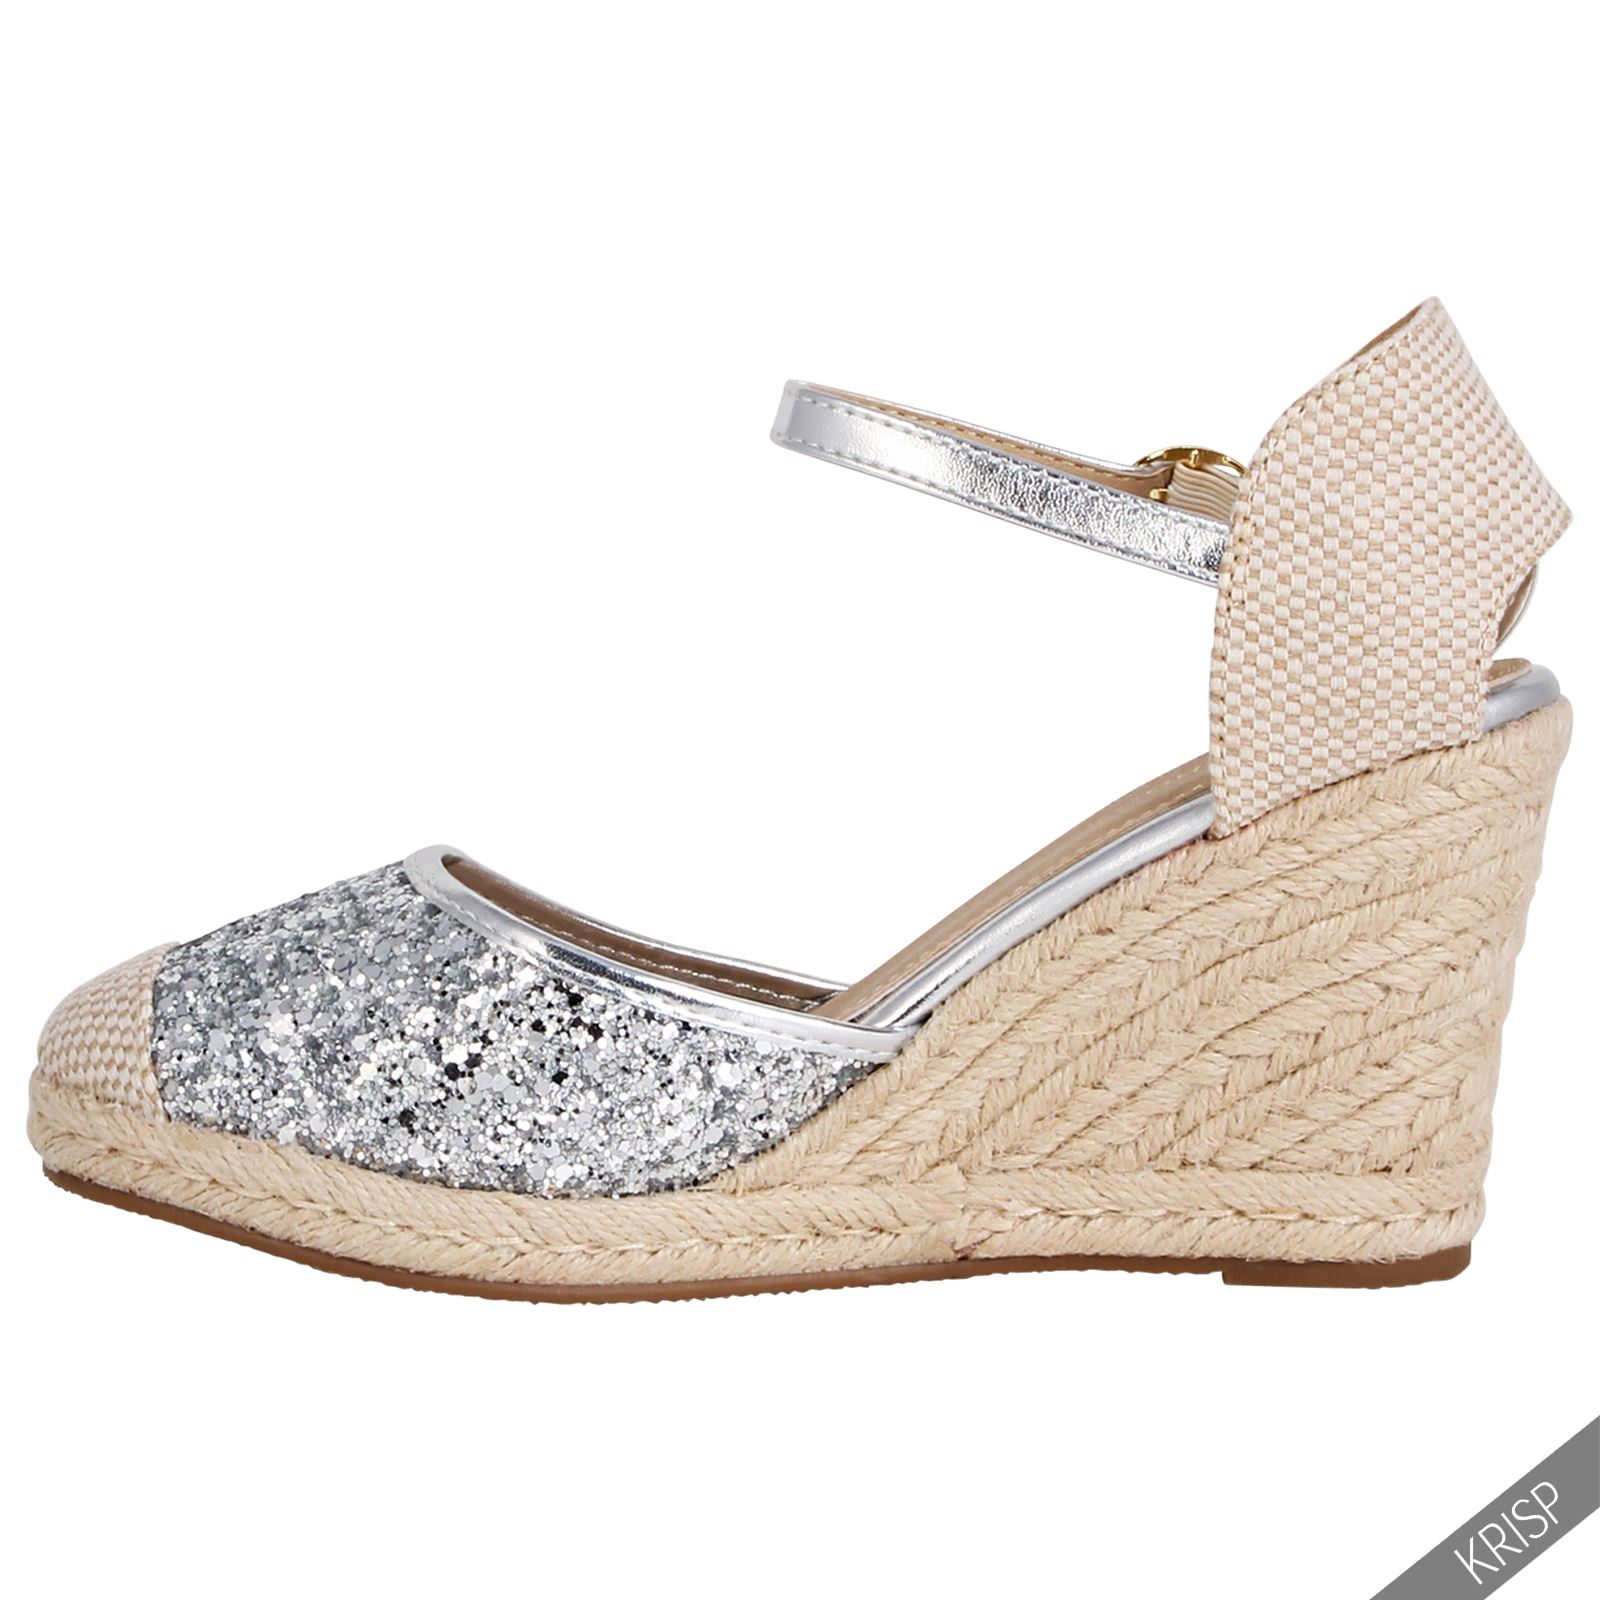 Womens Glitter Summer Espadrille Sandals High Heel Wedge ...